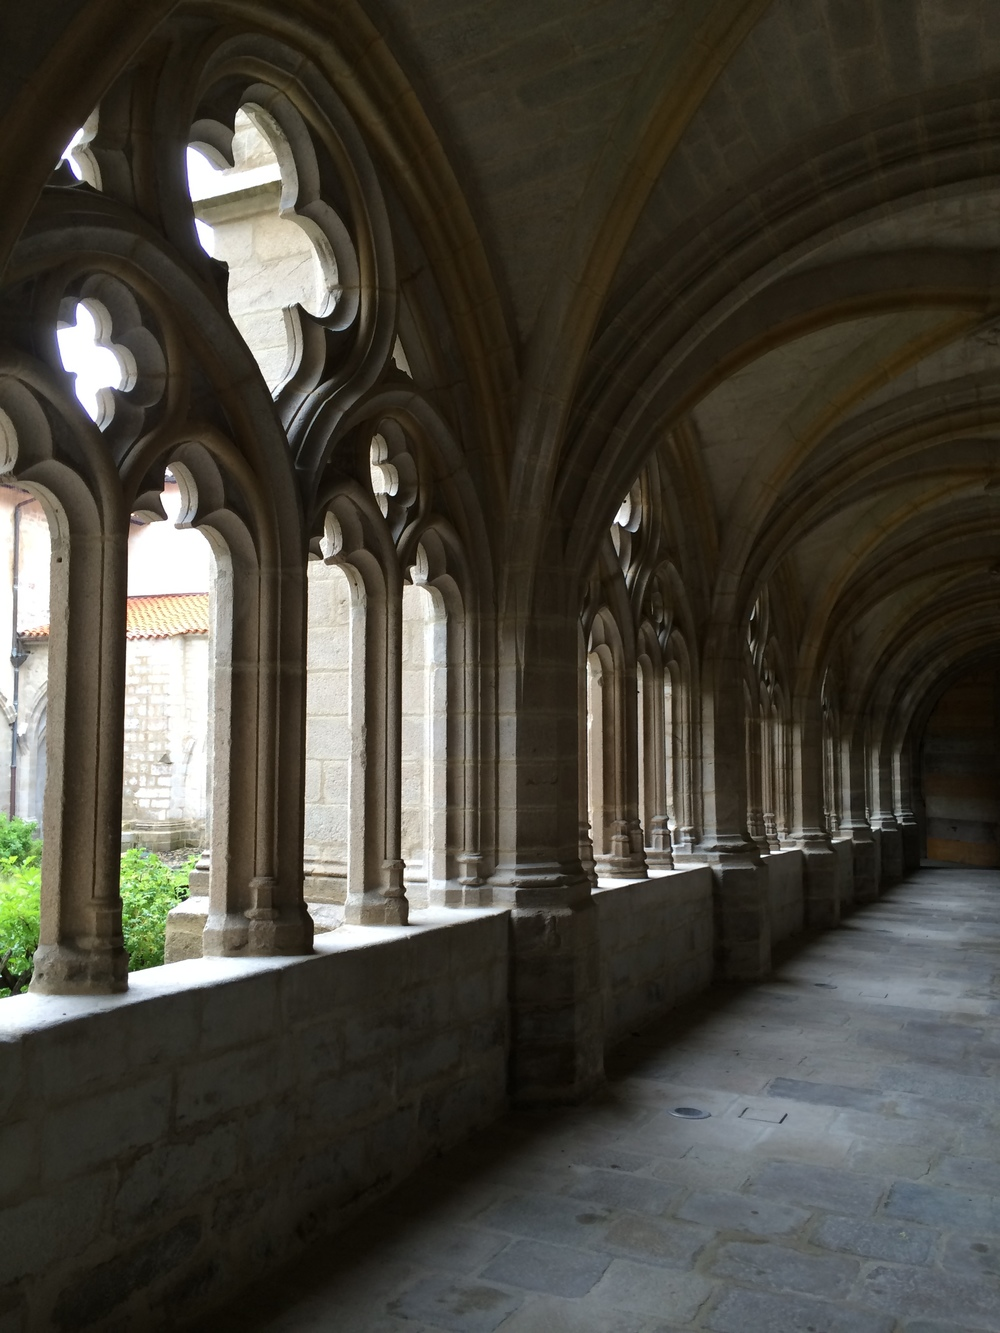 This is the abbey courtyard